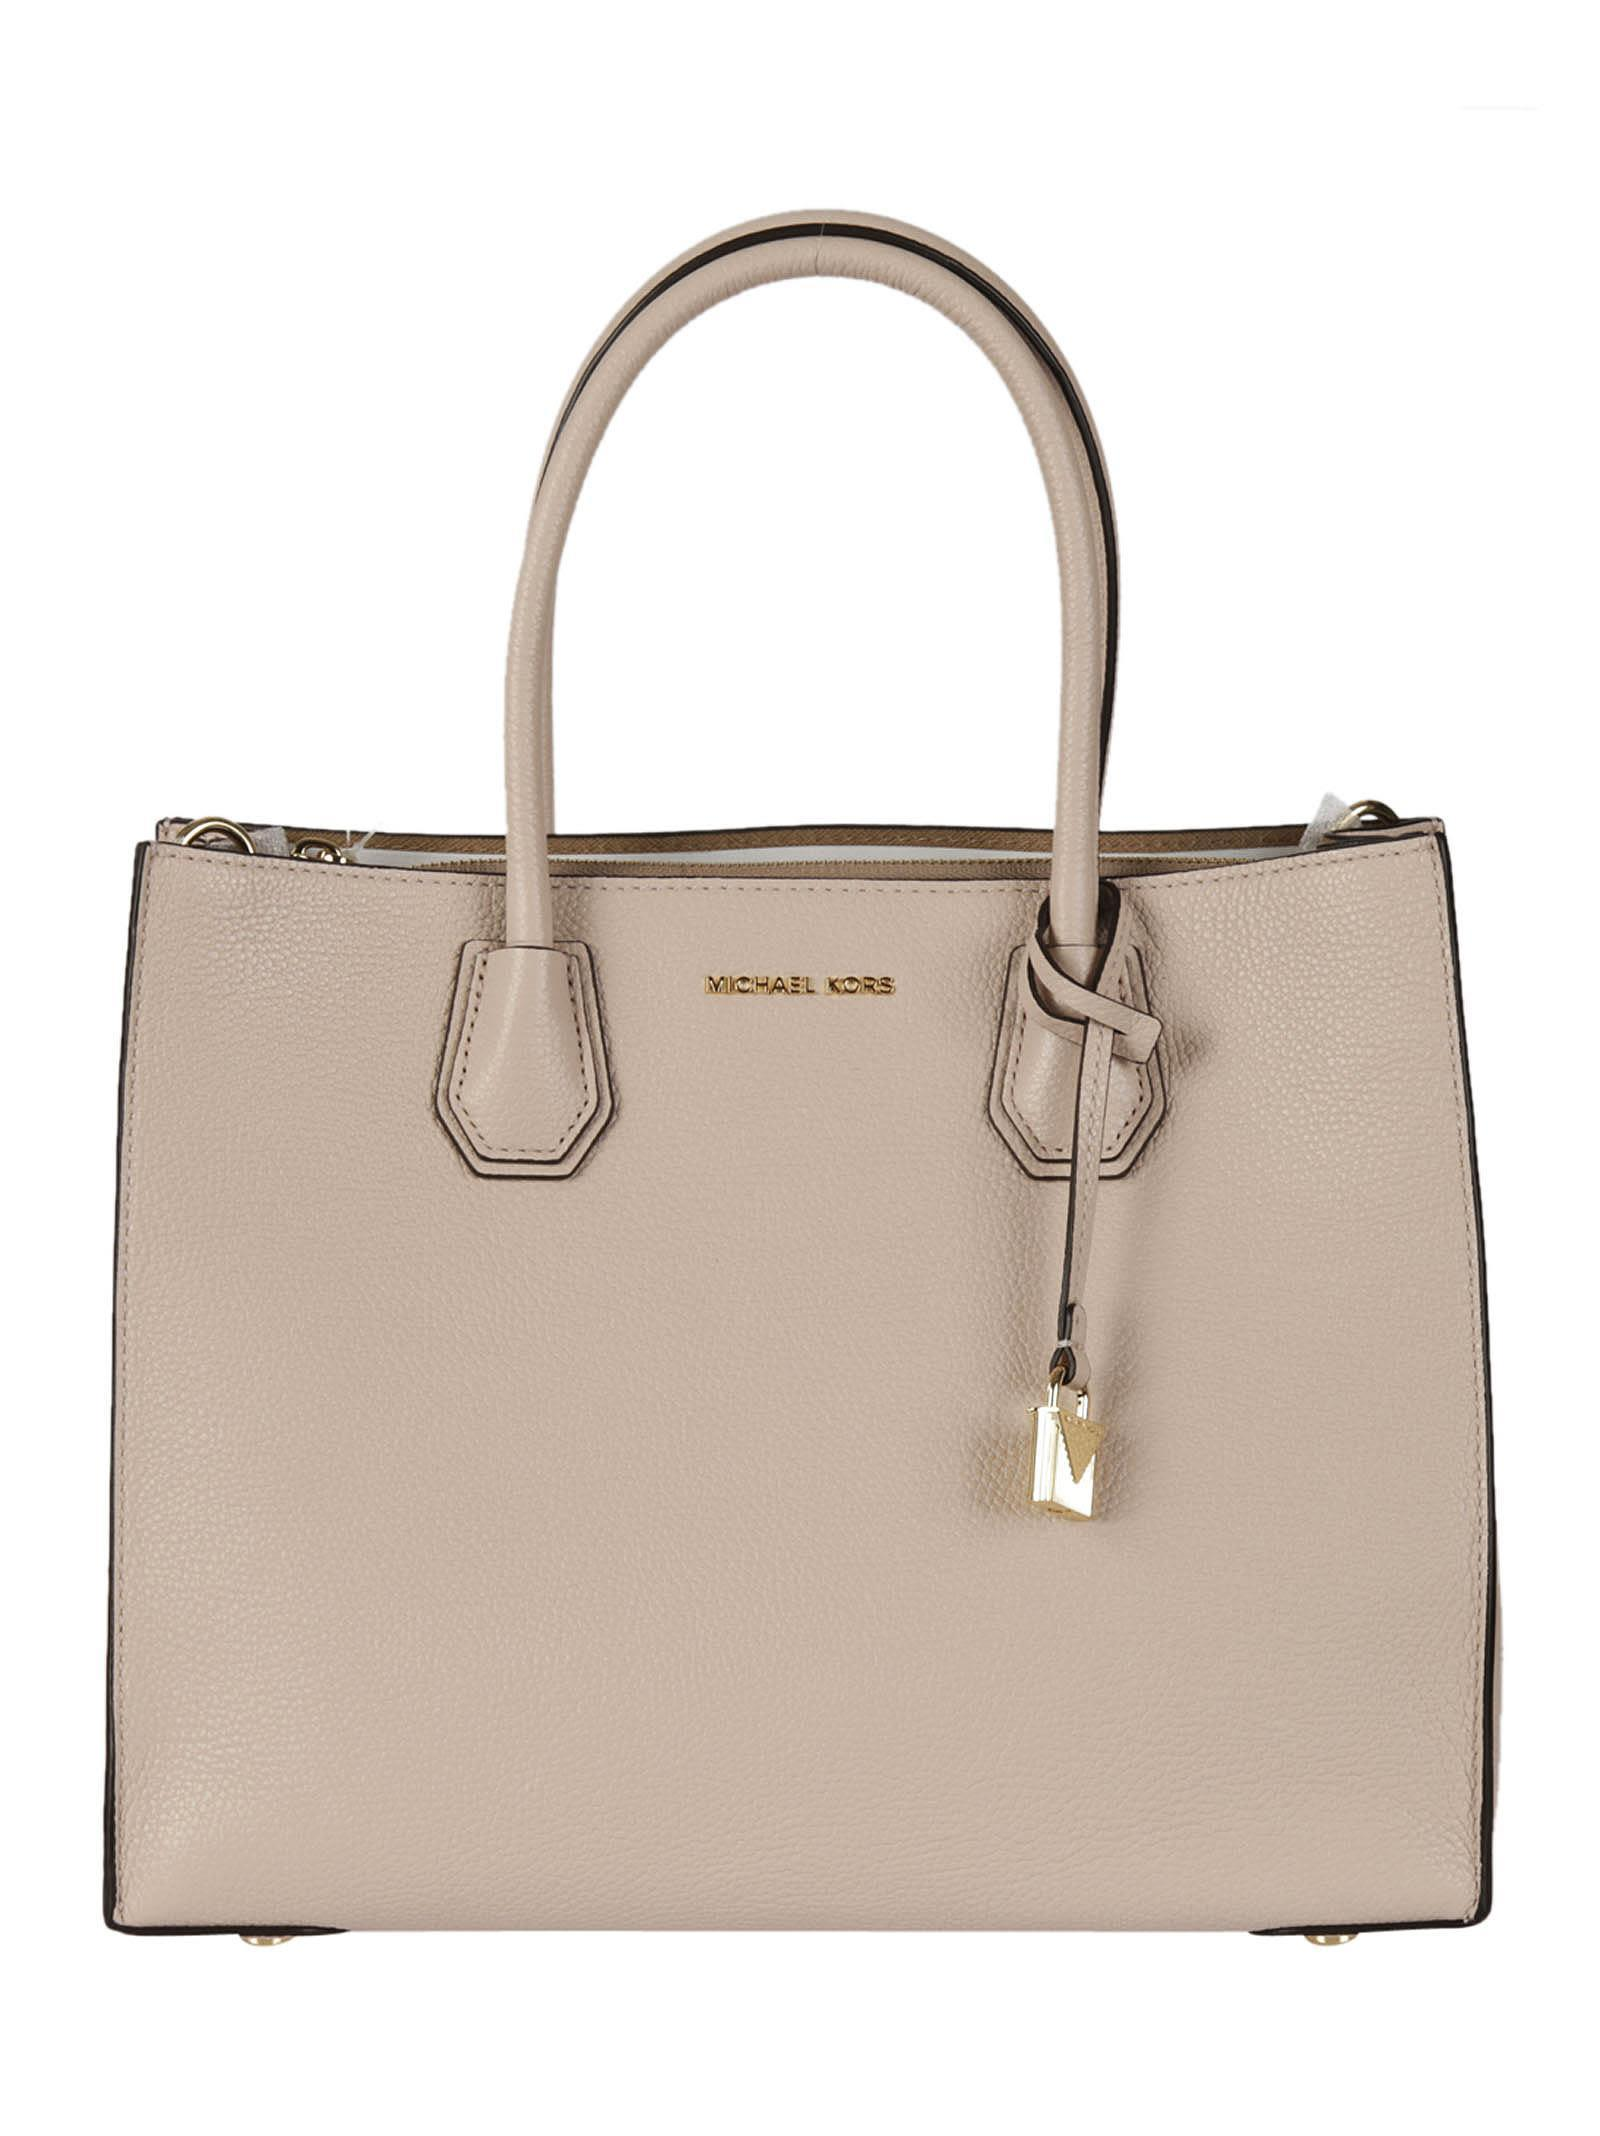 送料込 Michael Kors Medium Mercer Tote バッグ